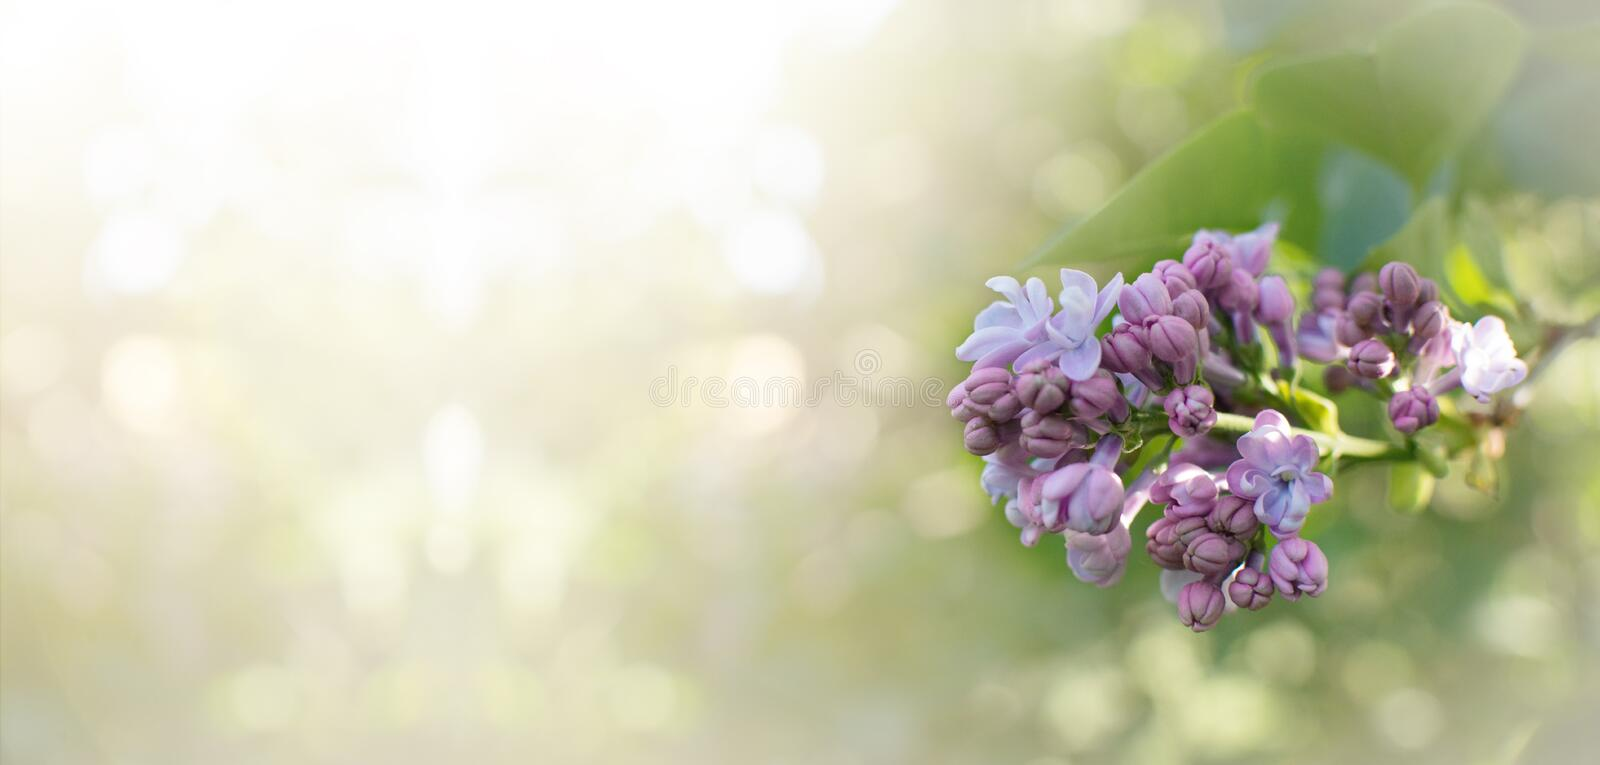 BANNER SPRING FLOWER, TWIG PURPLE LILAC SYRINGA VULGARIS. DEFOCUSED BACKGROUND royalty free stock image